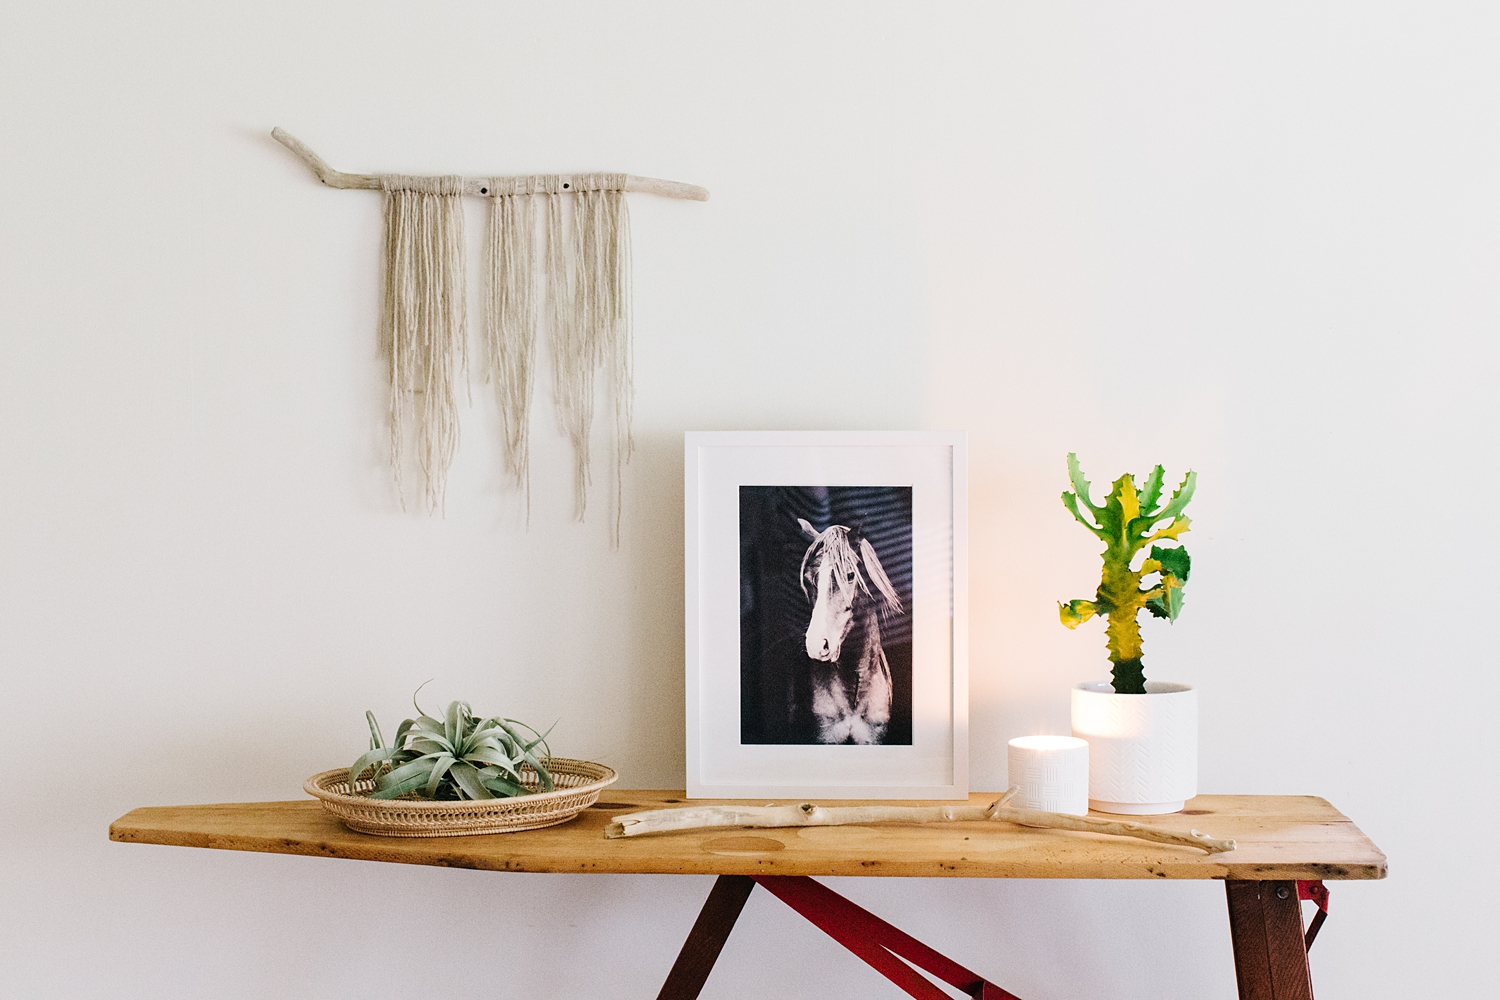 Keeping the tones natural on a console table.